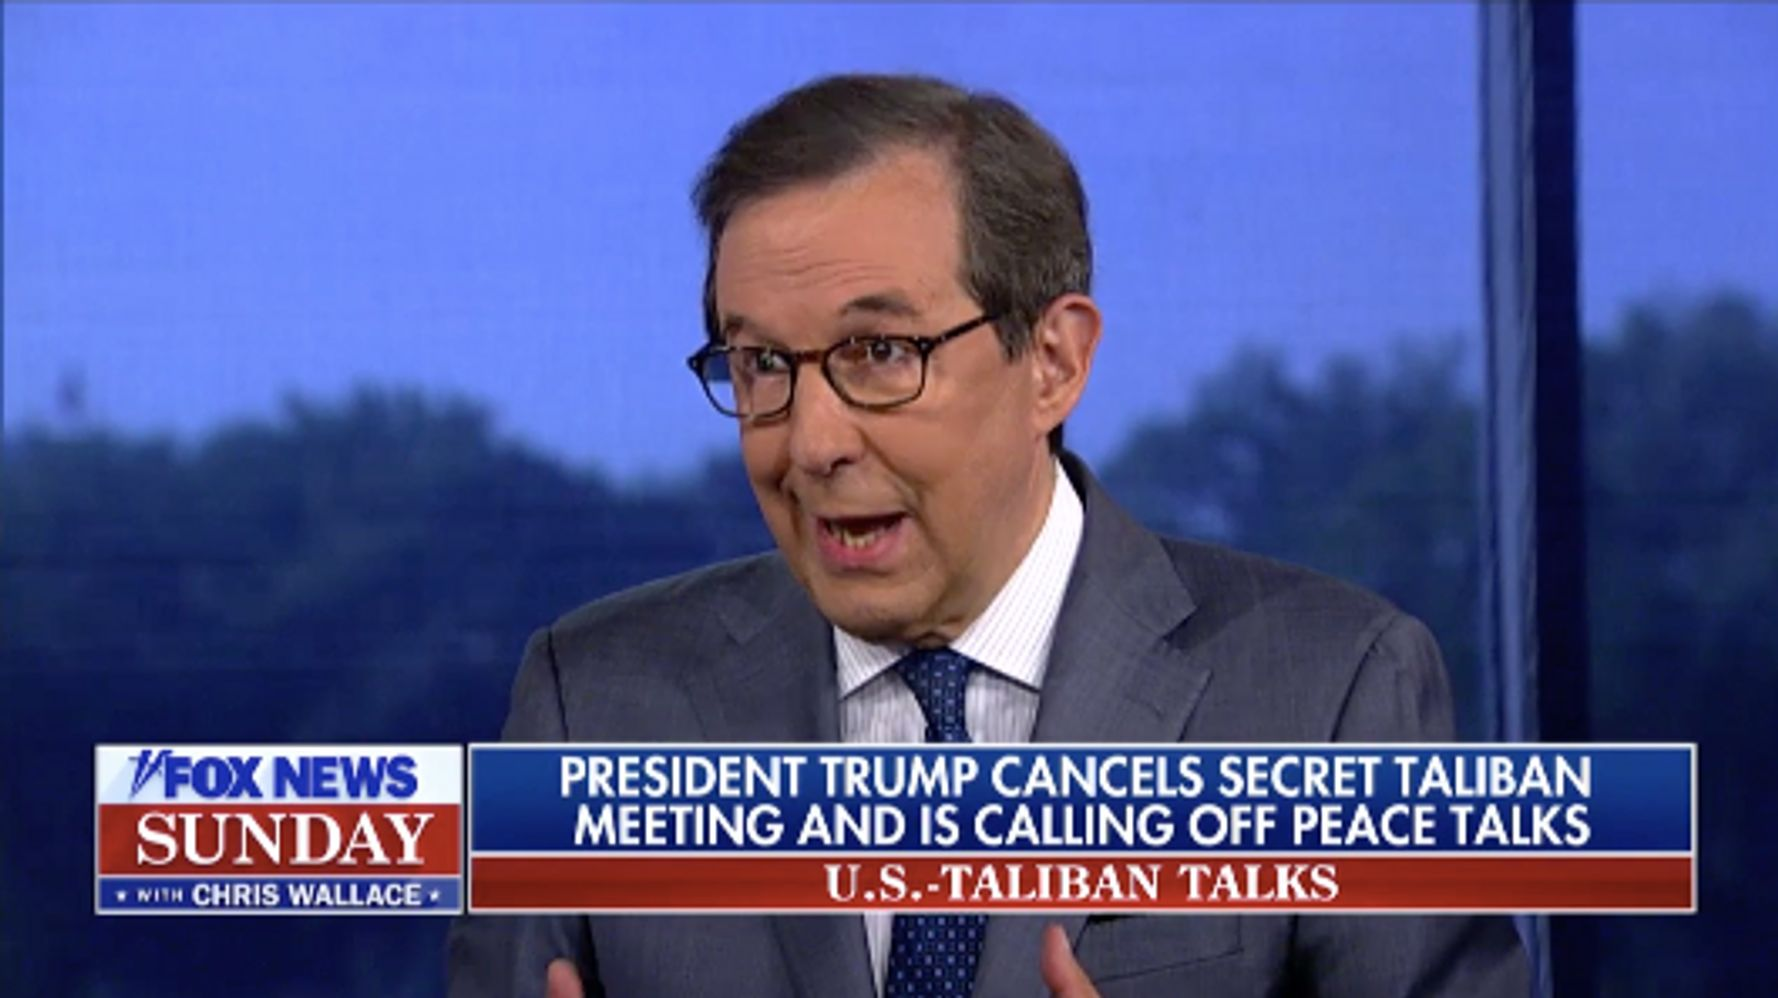 Westlake Legal Group 5d752a633b00002b88d0c228 Chris Wallace Grills Pompeo On Taliban Invite: 'Who Thought It Was A Good Idea?'